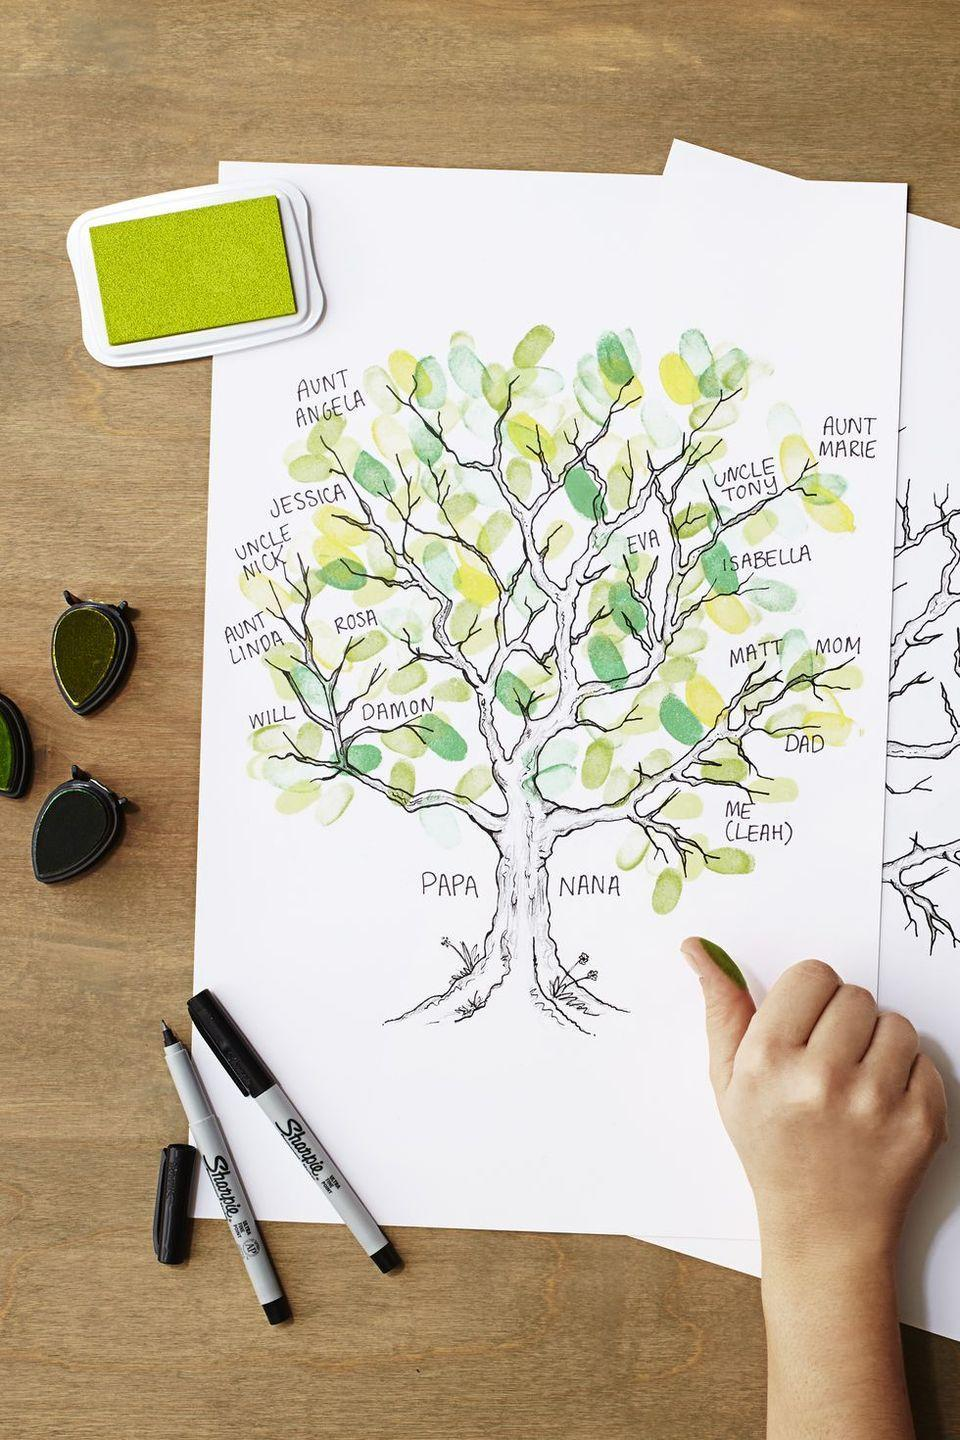 """<p>A game and a family history lesson all in one. See who can complete the family tree the fastest to win a special prize.</p><p><em><a href=""""https://www.goodhousekeeping.com/home/craft-ideas/a37873/family-tree-craft-for-kids/"""" rel=""""nofollow noopener"""" target=""""_blank"""" data-ylk=""""slk:Get the tutorial »"""" class=""""link rapid-noclick-resp"""">Get the tutorial »</a></em></p>"""